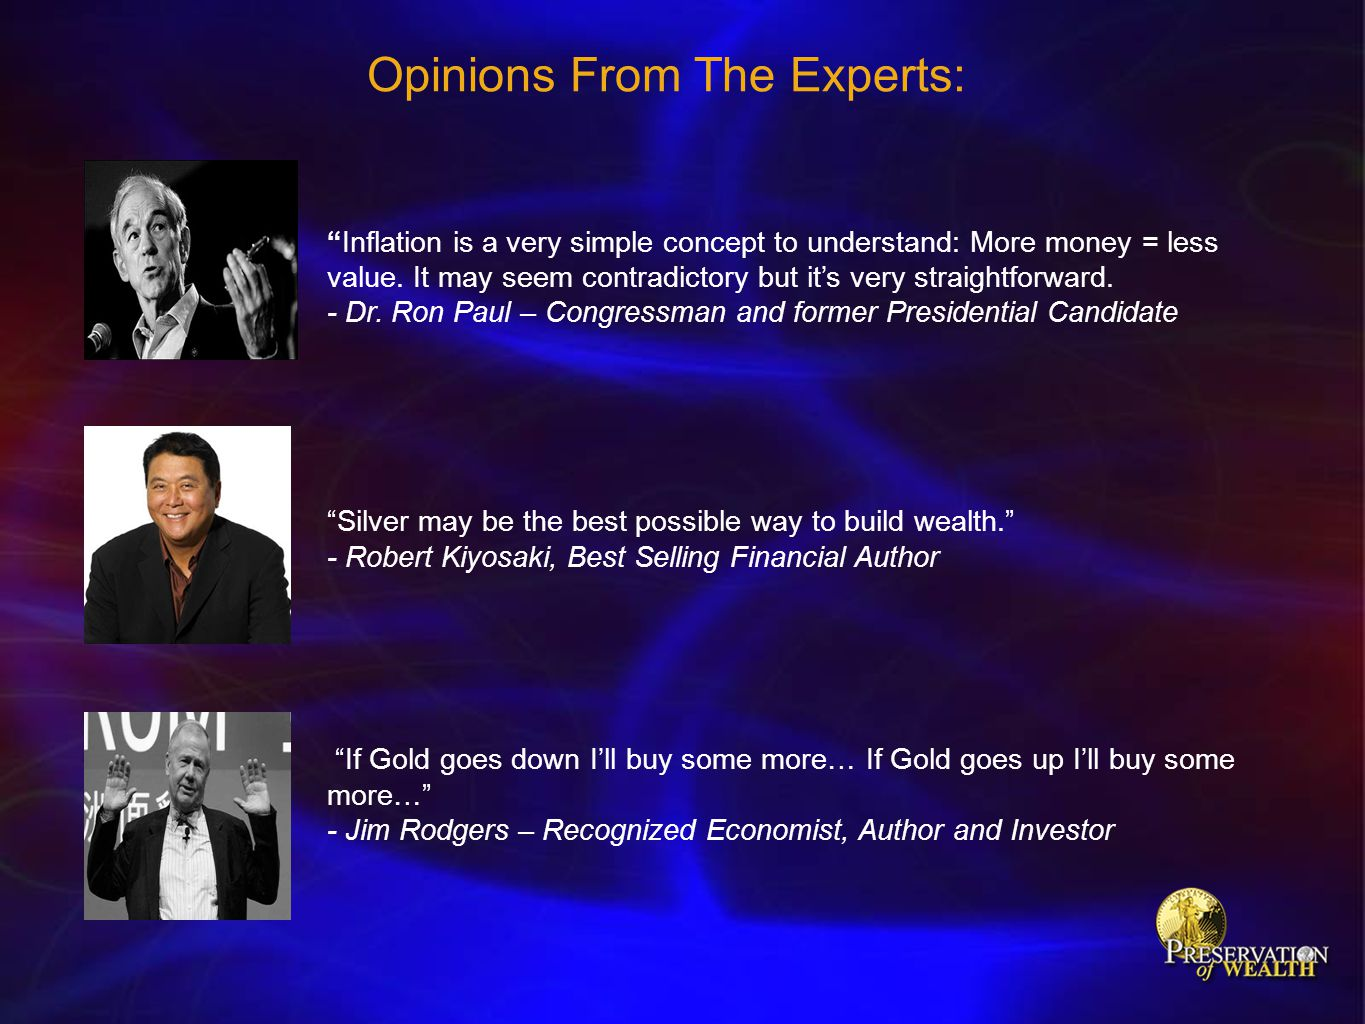 Opinions From The Experts: